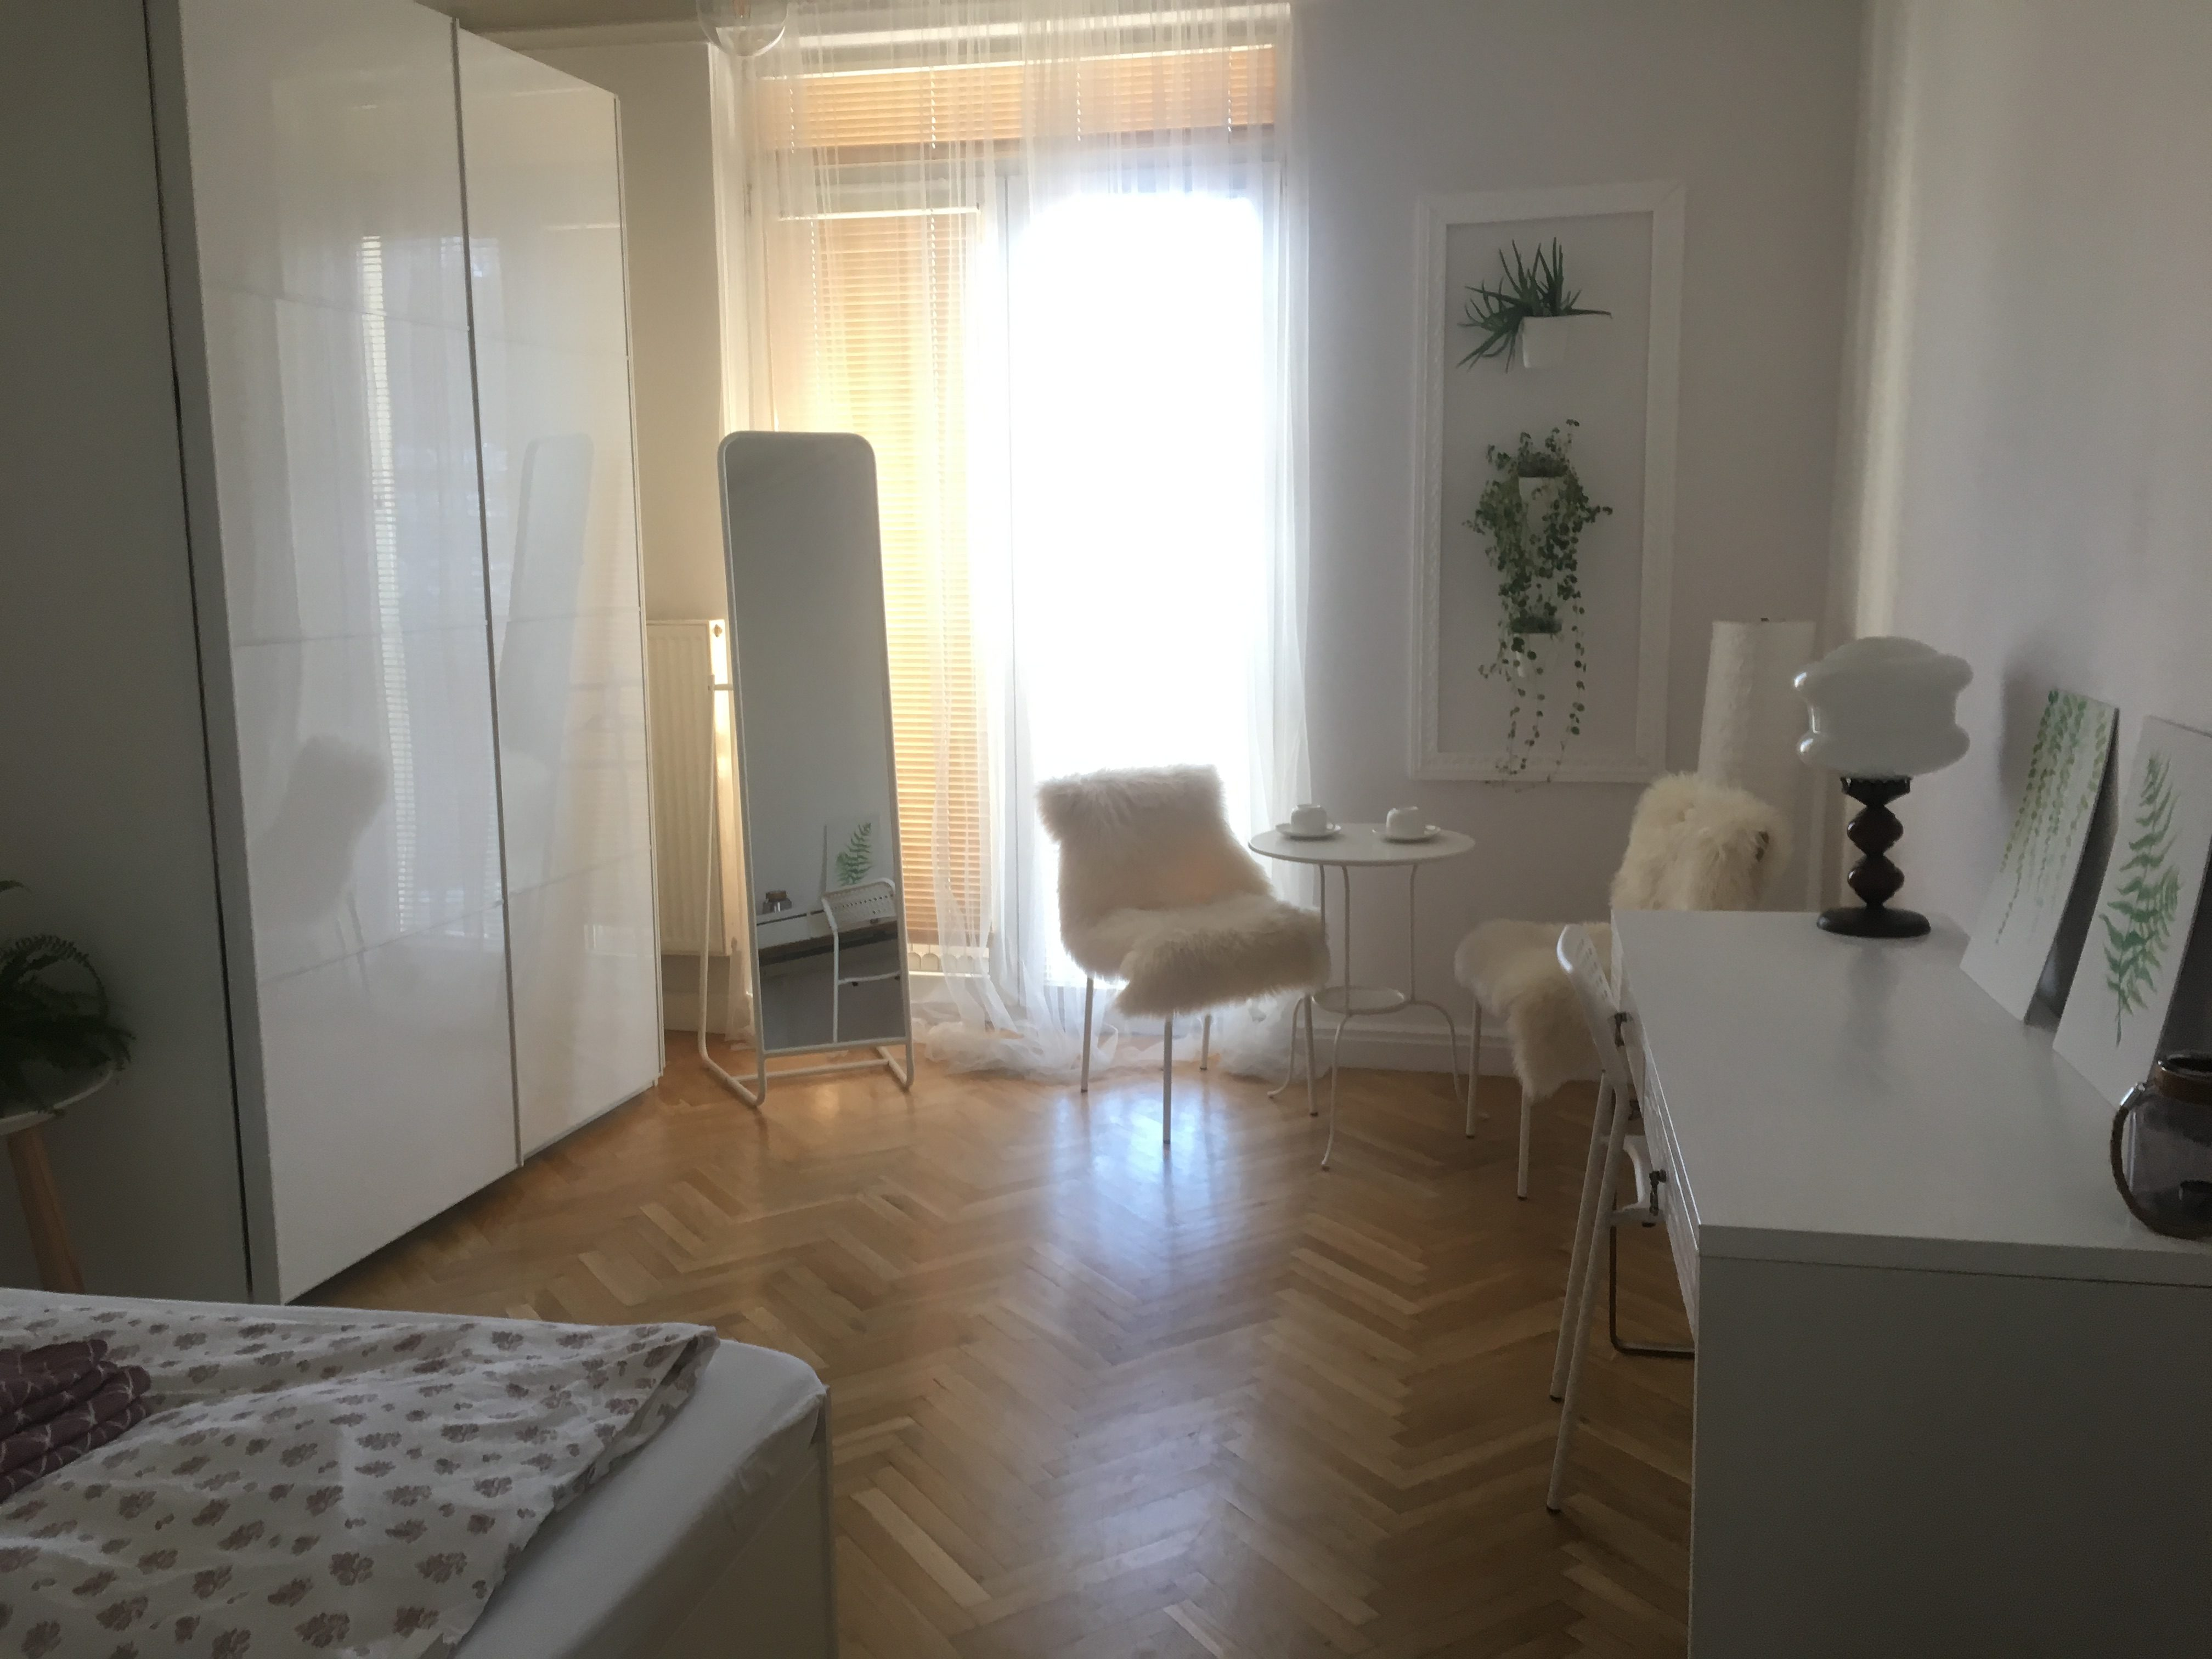 view inside my Warsaw Airbnb